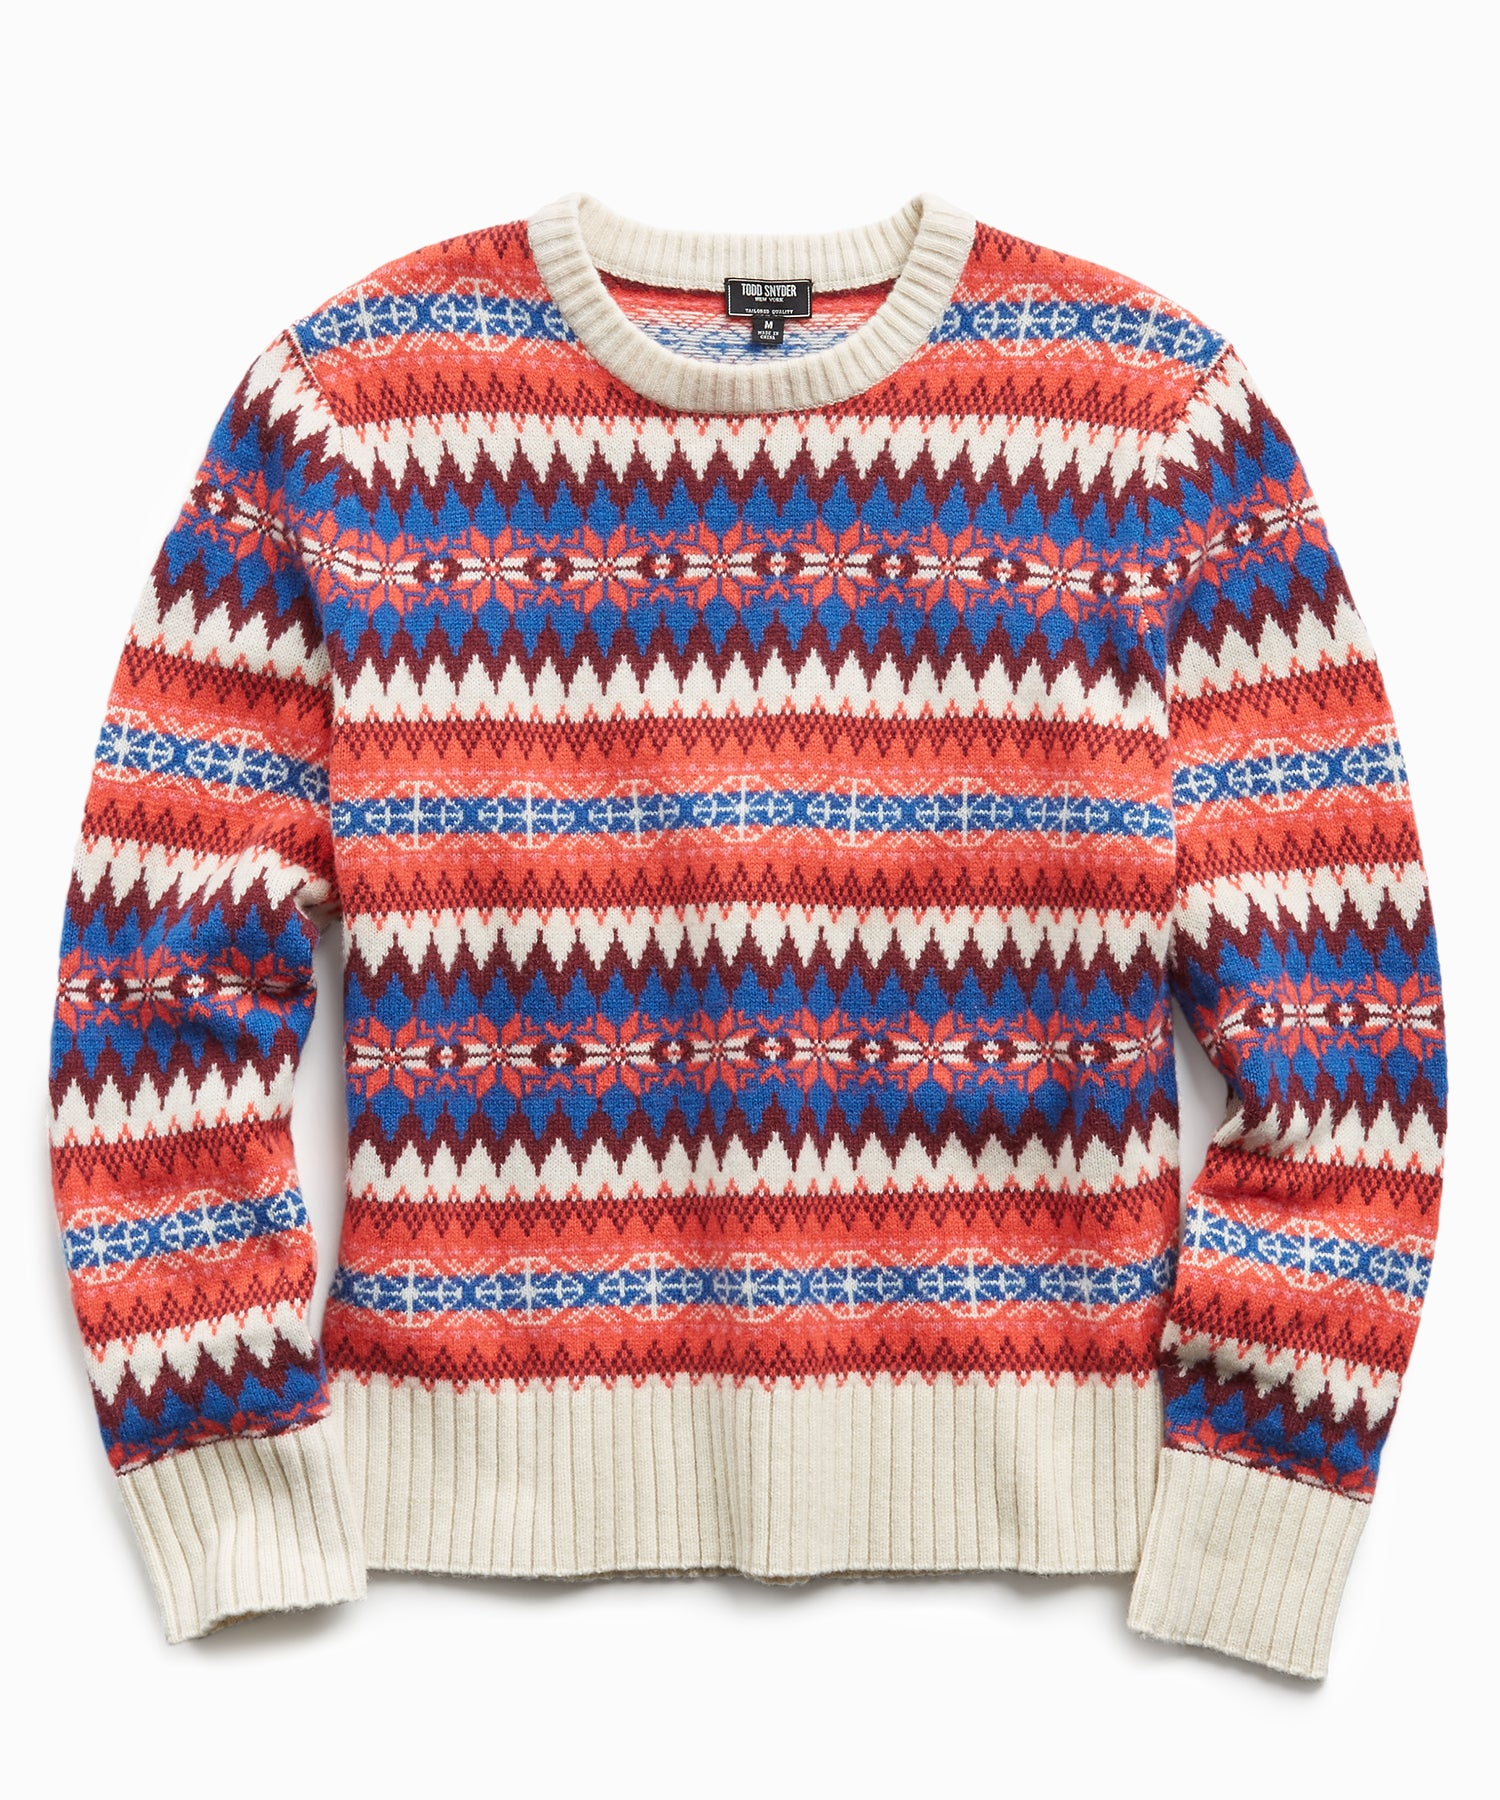 Wool Fairisle Crewneck Sweater in Rose